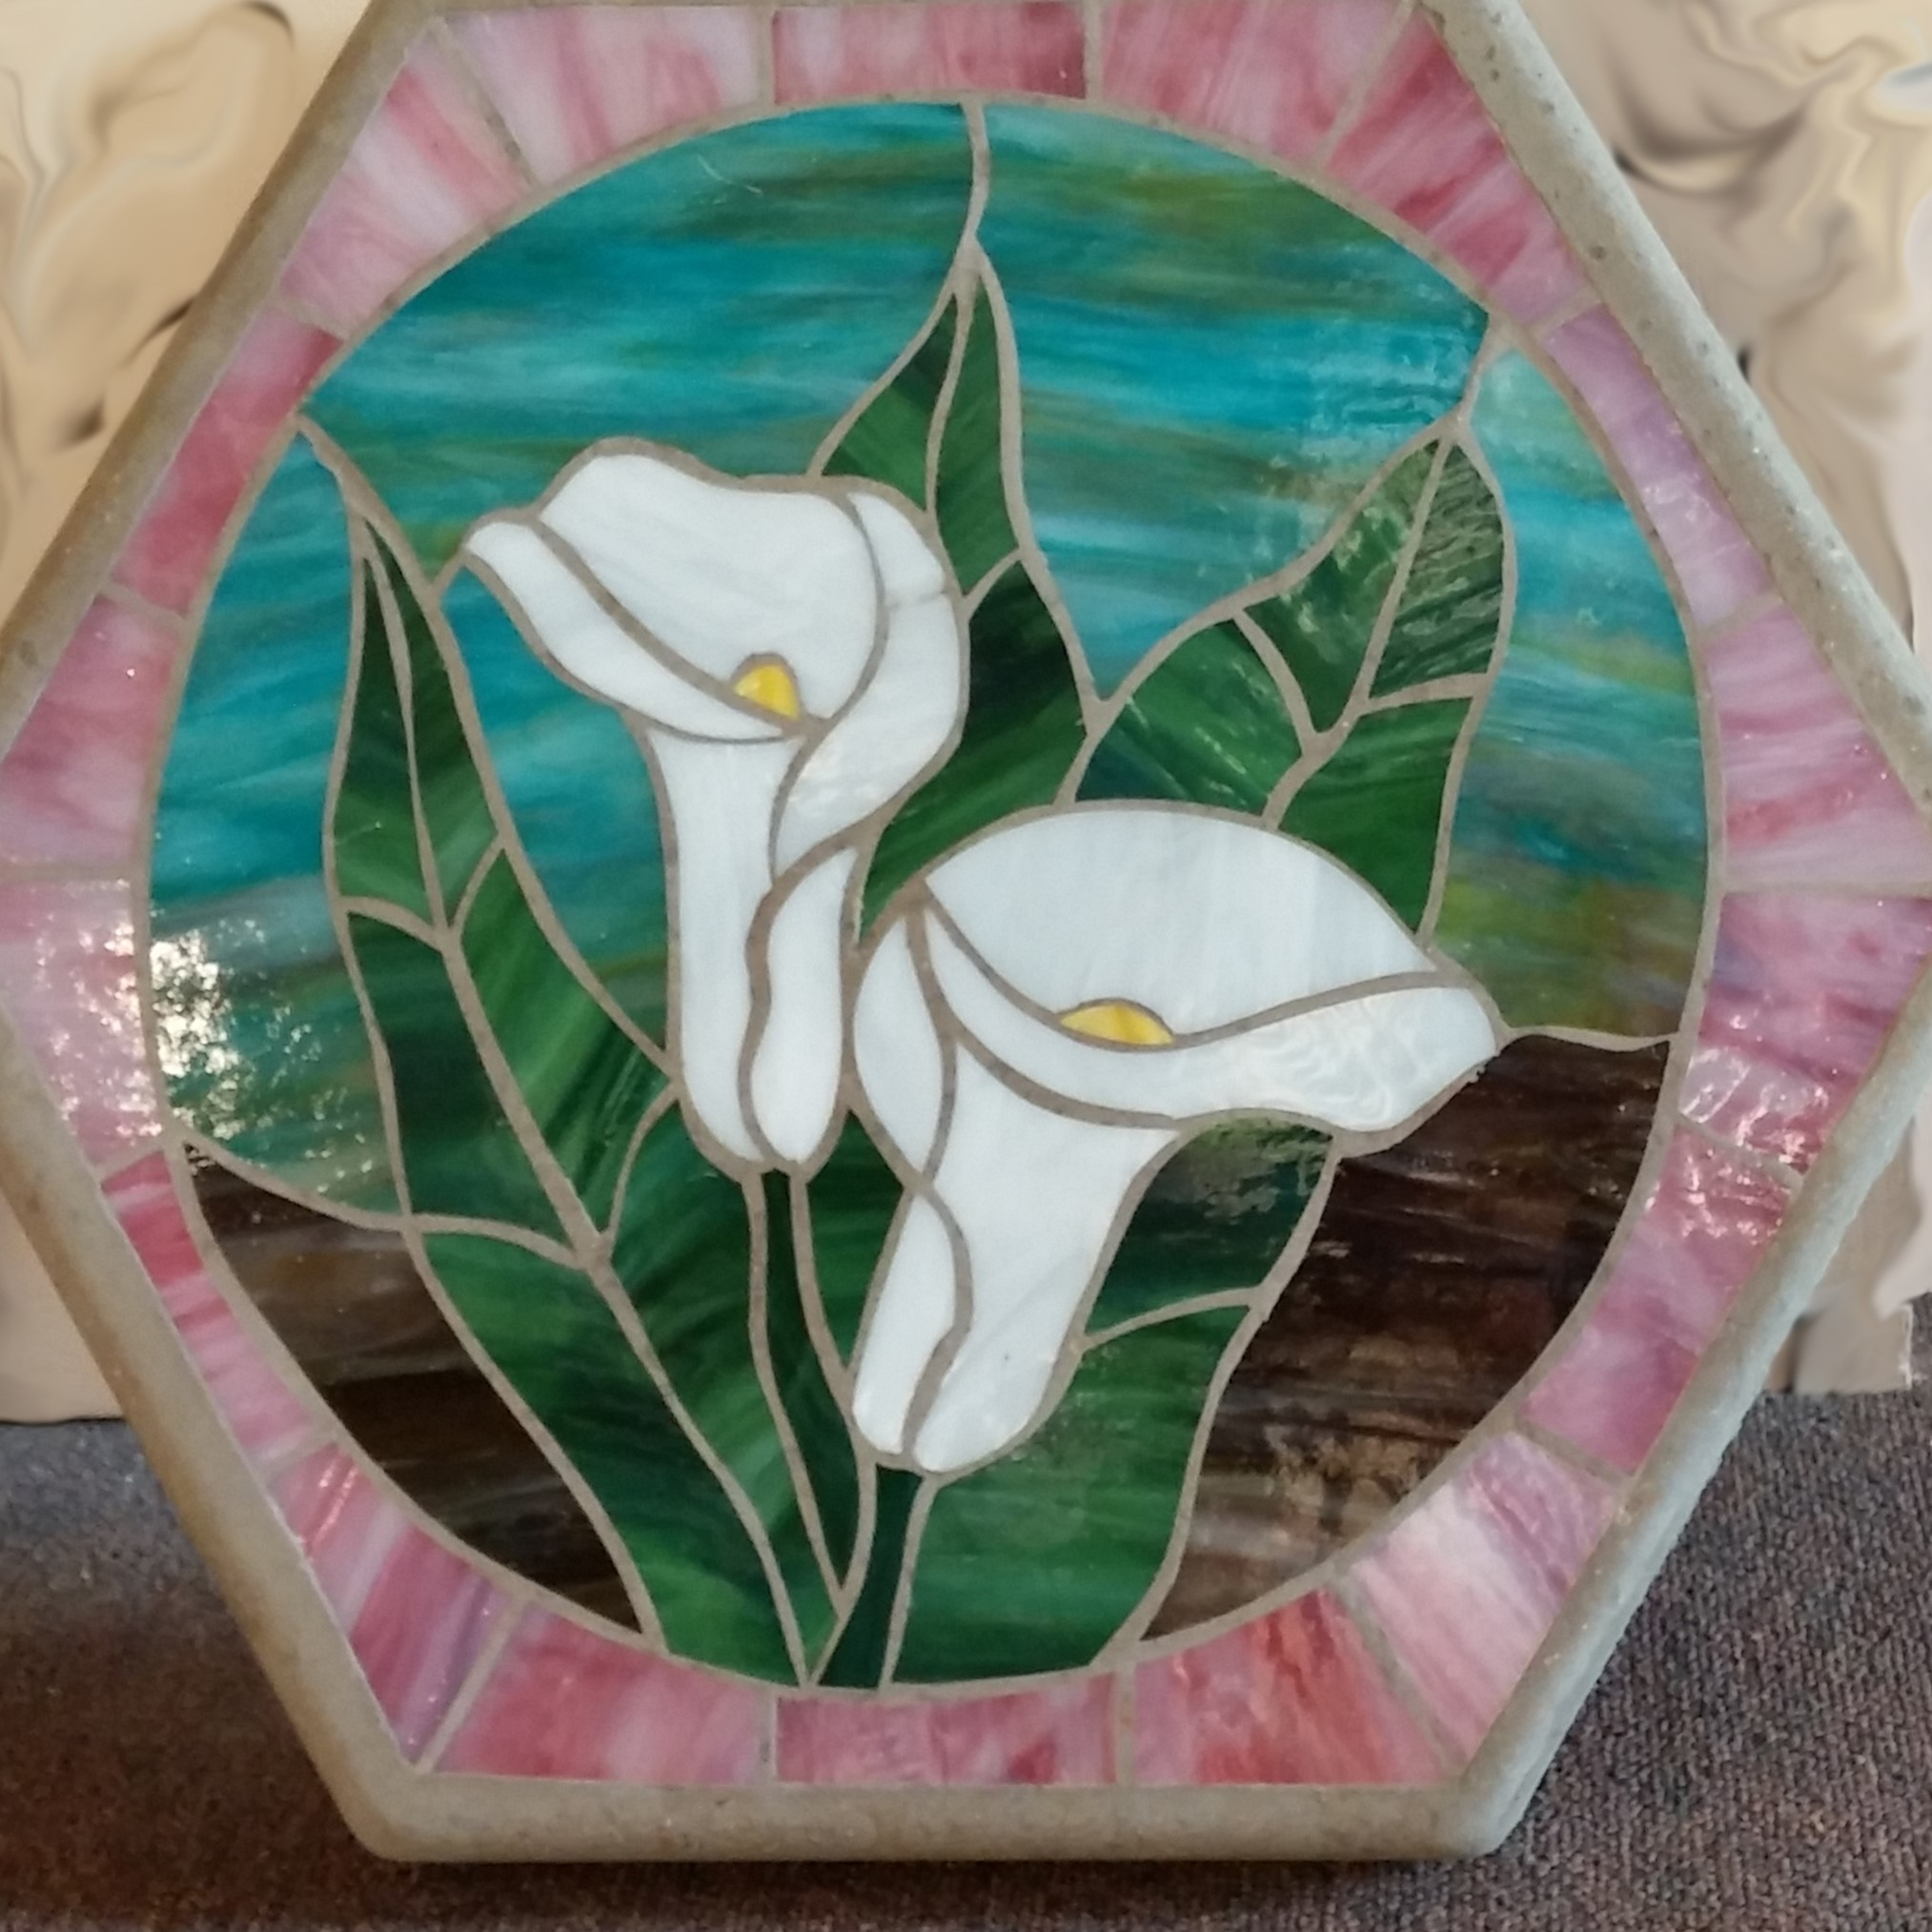 Mosaic stepping stone class project example.